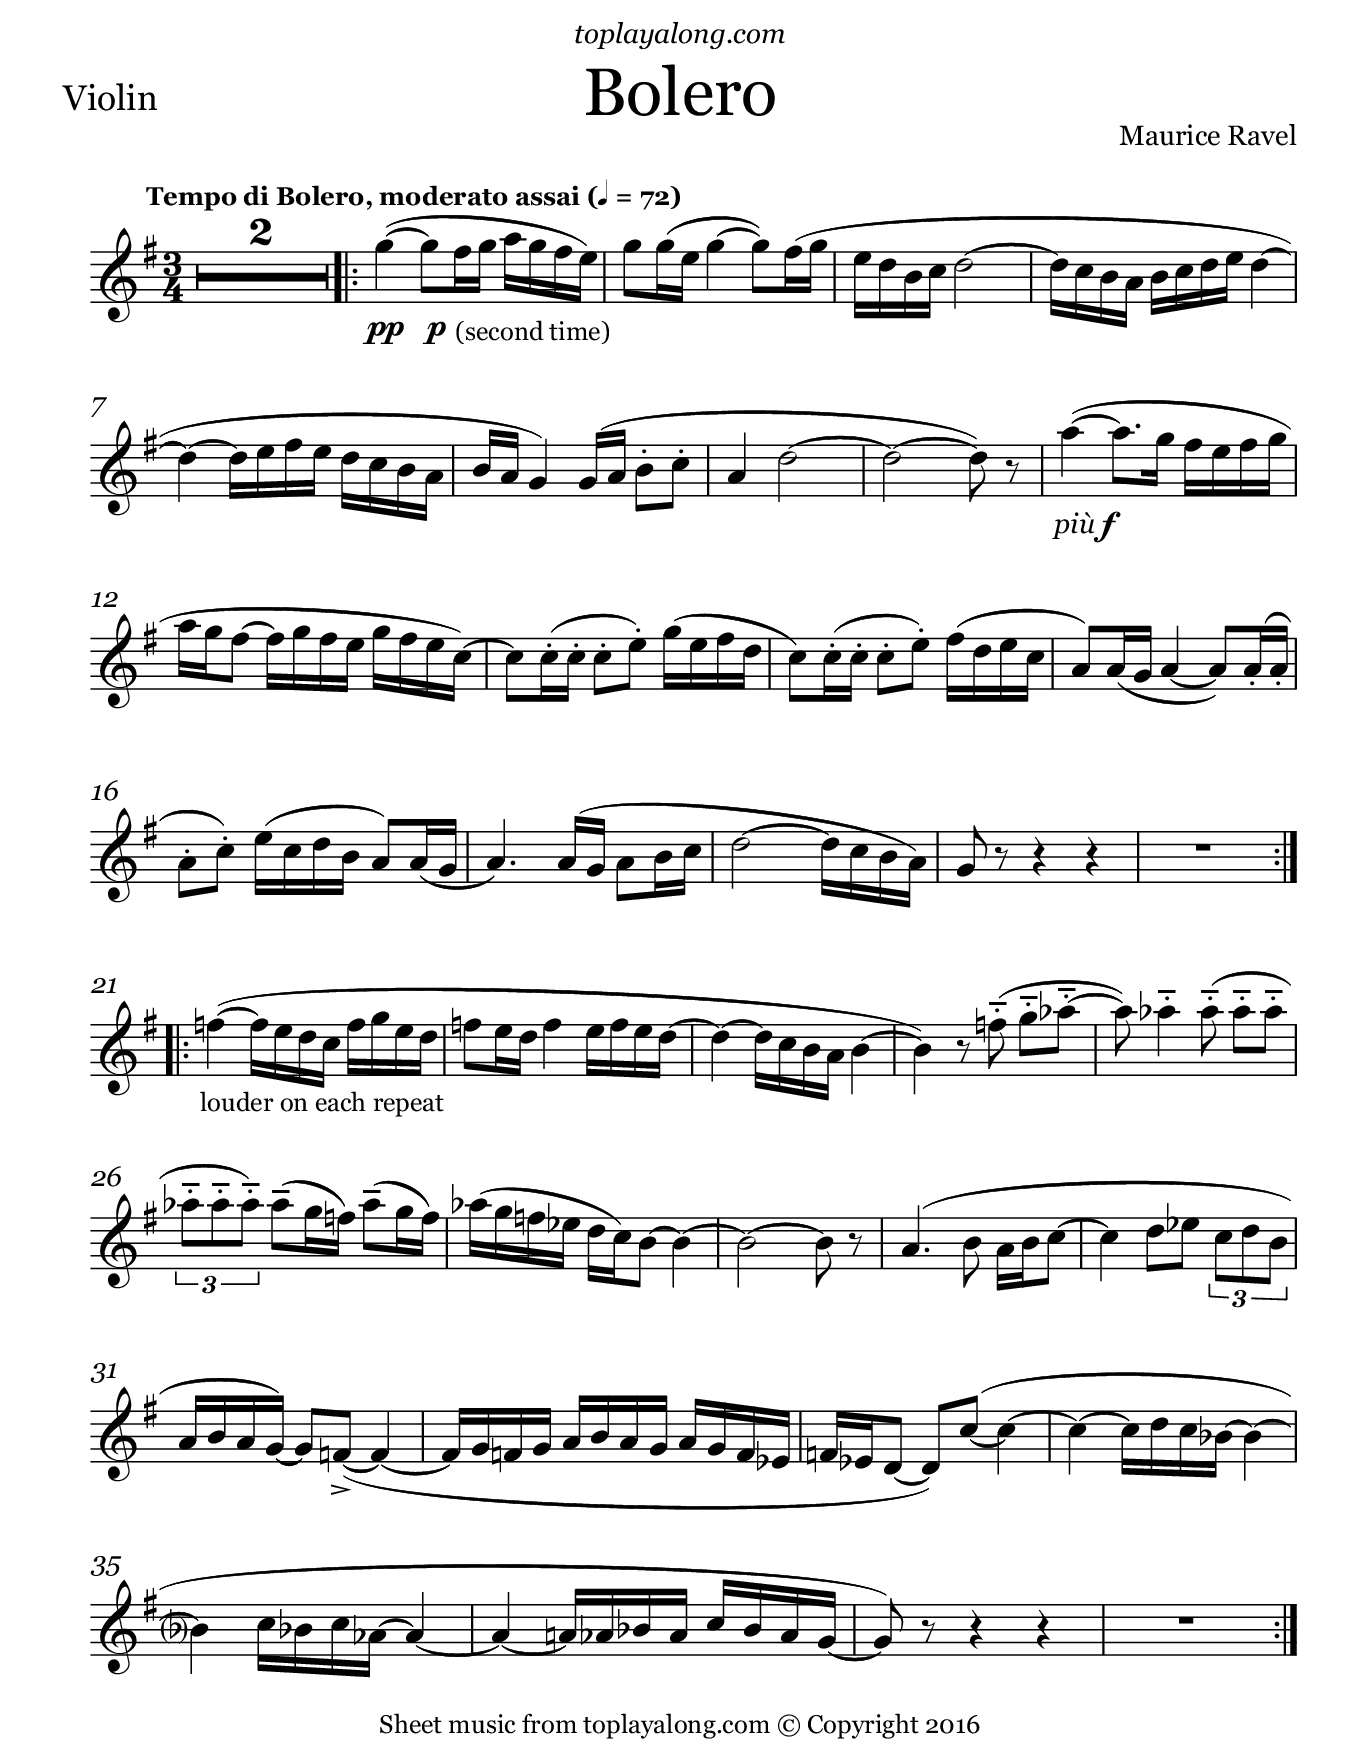 Bolero by Ravel. Sheet music for Violin, page 1.